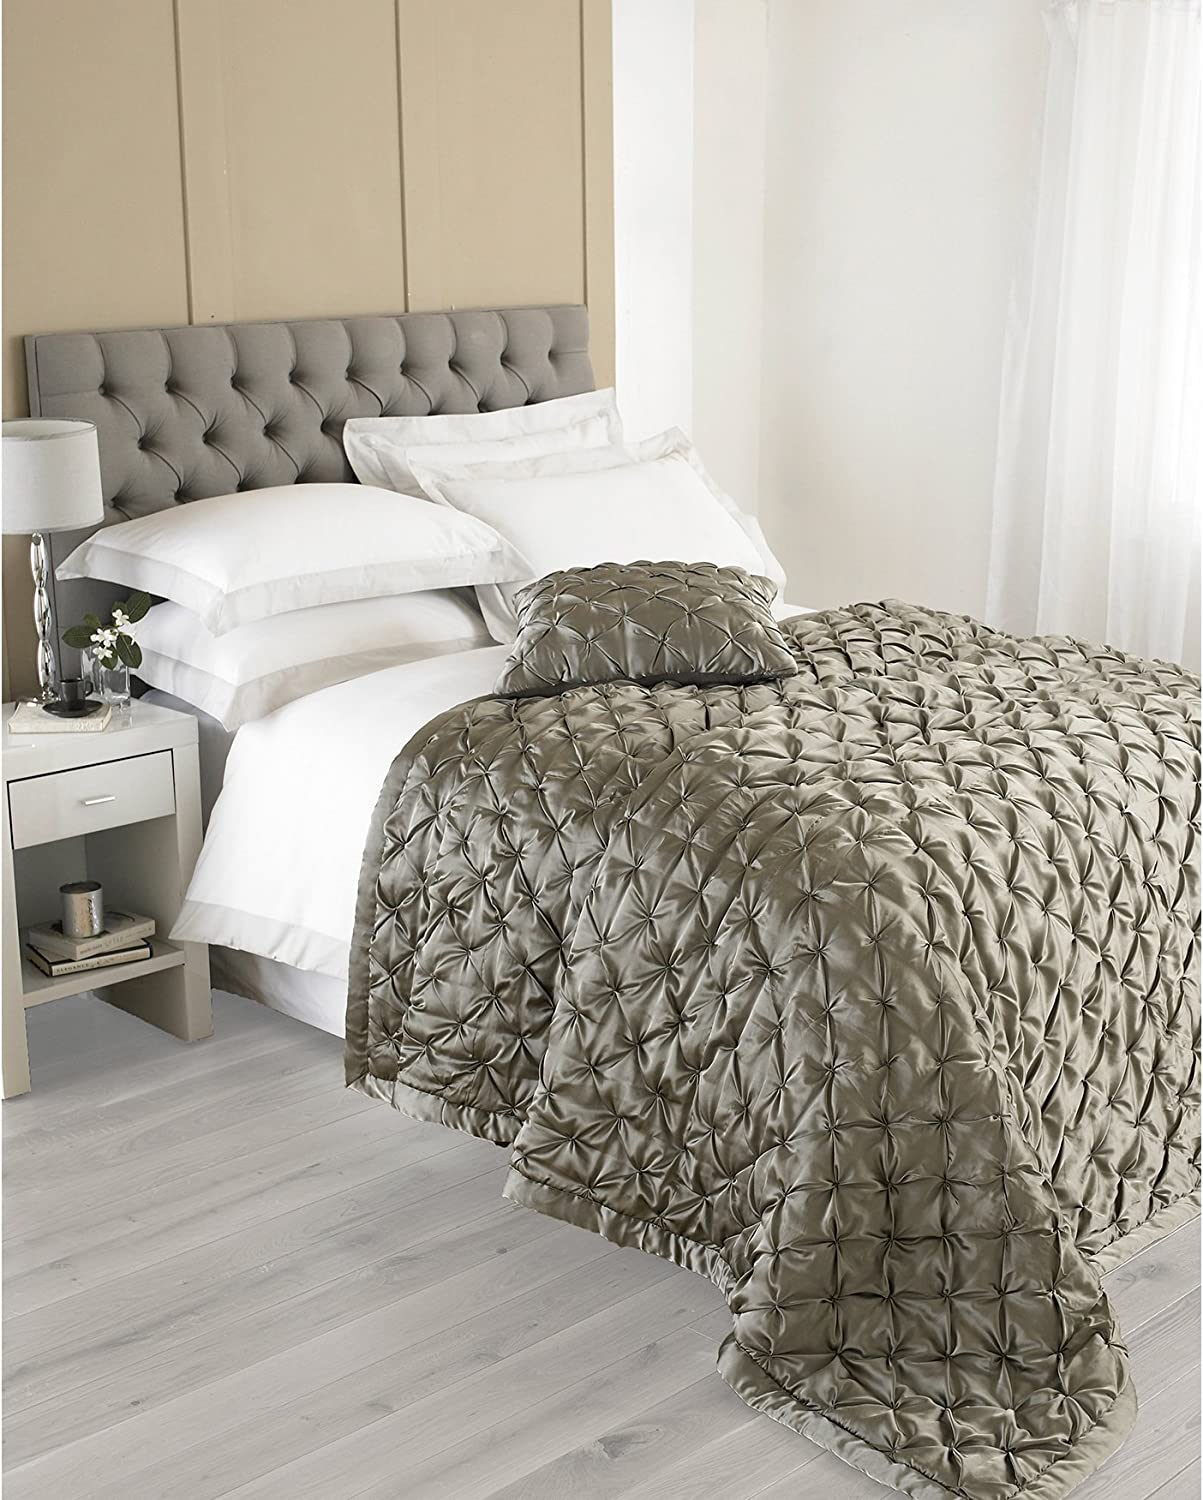 Riva Paoletti Limoges Grey Bedspreads 265 Cm X 265 Cm Polyester Full Amazon Co Uk Kitchen Home